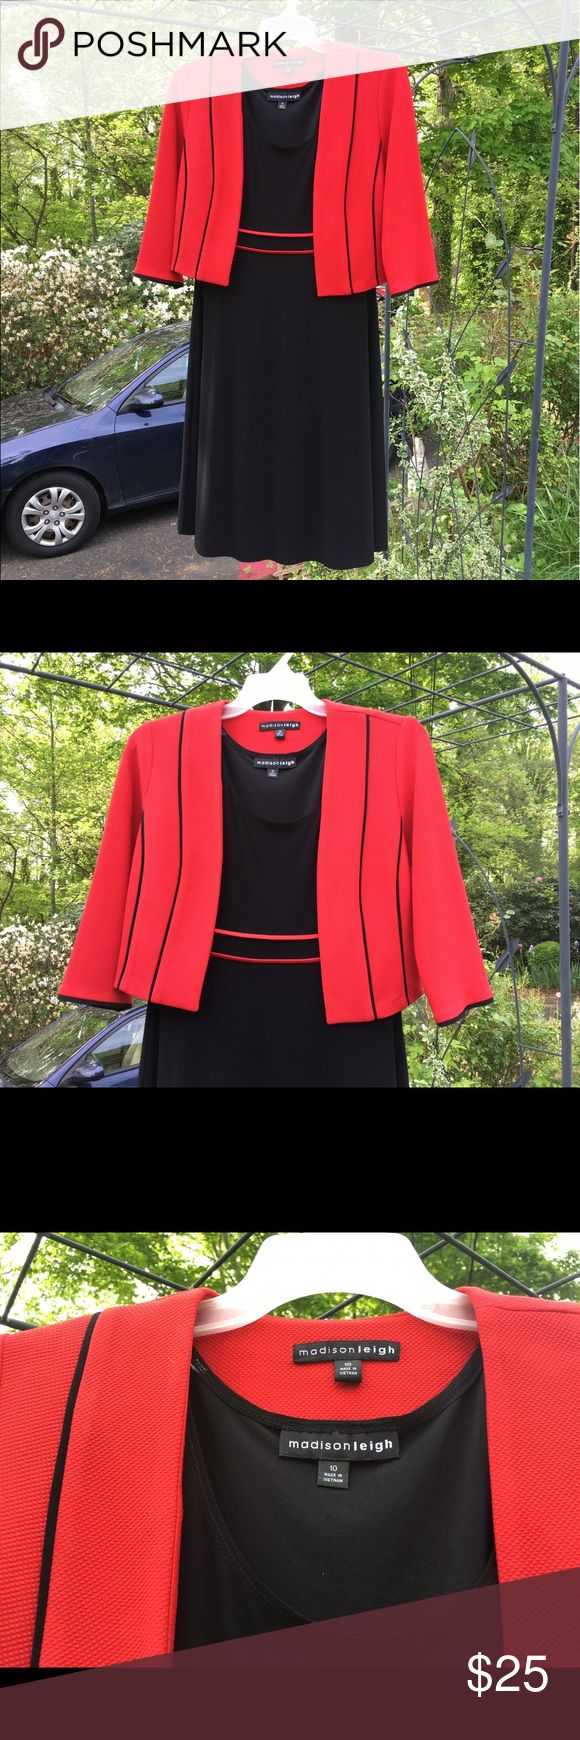 Madison Leigh 2 pc Red Blazer Black Tank Dress 10 Madison Leigh 2 piece red blazer and black tank dress set are size 10. Blazer has a texture and black trim. There are no buttons.  Tank dress has red trim with no zippers or buttons. Made in Vietnam. Shell: 95% polyester 5% spandex. Combo: 94% polyester 6% spandex. Perfect outfit for work and then a night out. Dress very flowy; perfect for dancing. Madison Leigh Dresses Midi